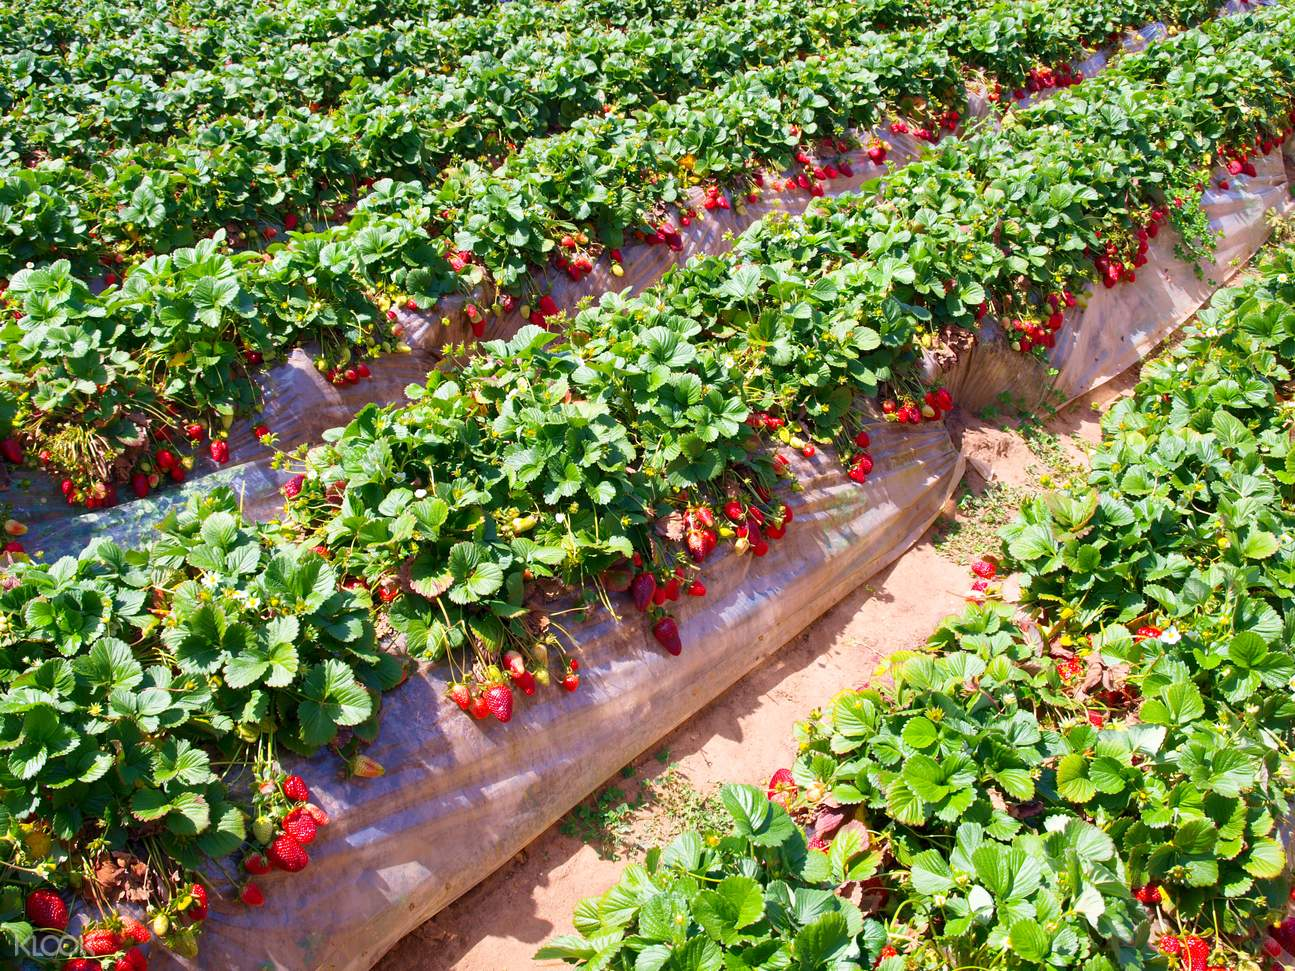 Strawberry Picking & Gamcheon Culture Village and Songdo